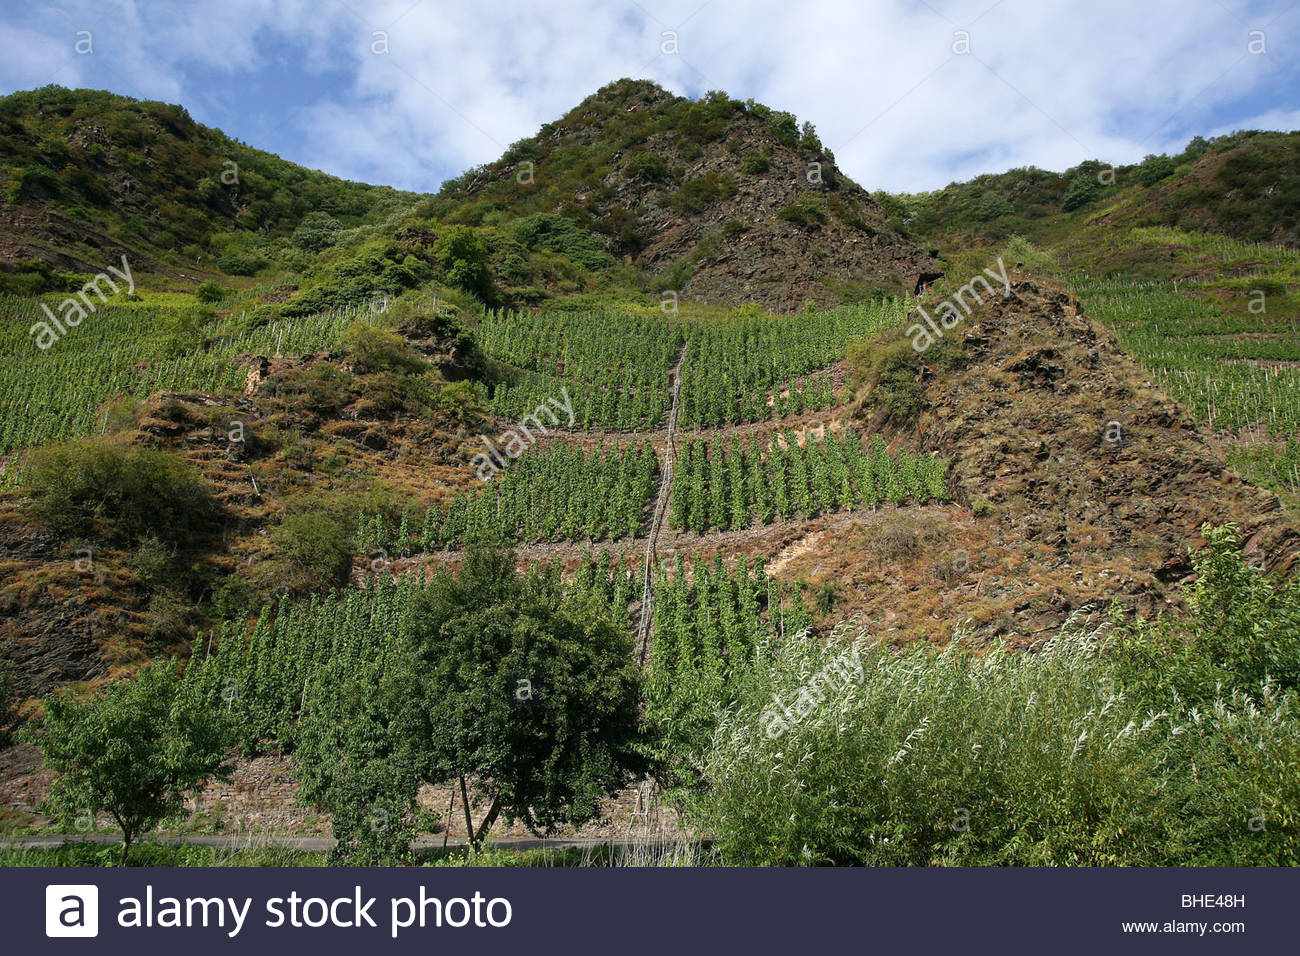 Calmont The Rhineland, steepest vineyards in Europe, Bremm-Calmont, the Moselle valley ...